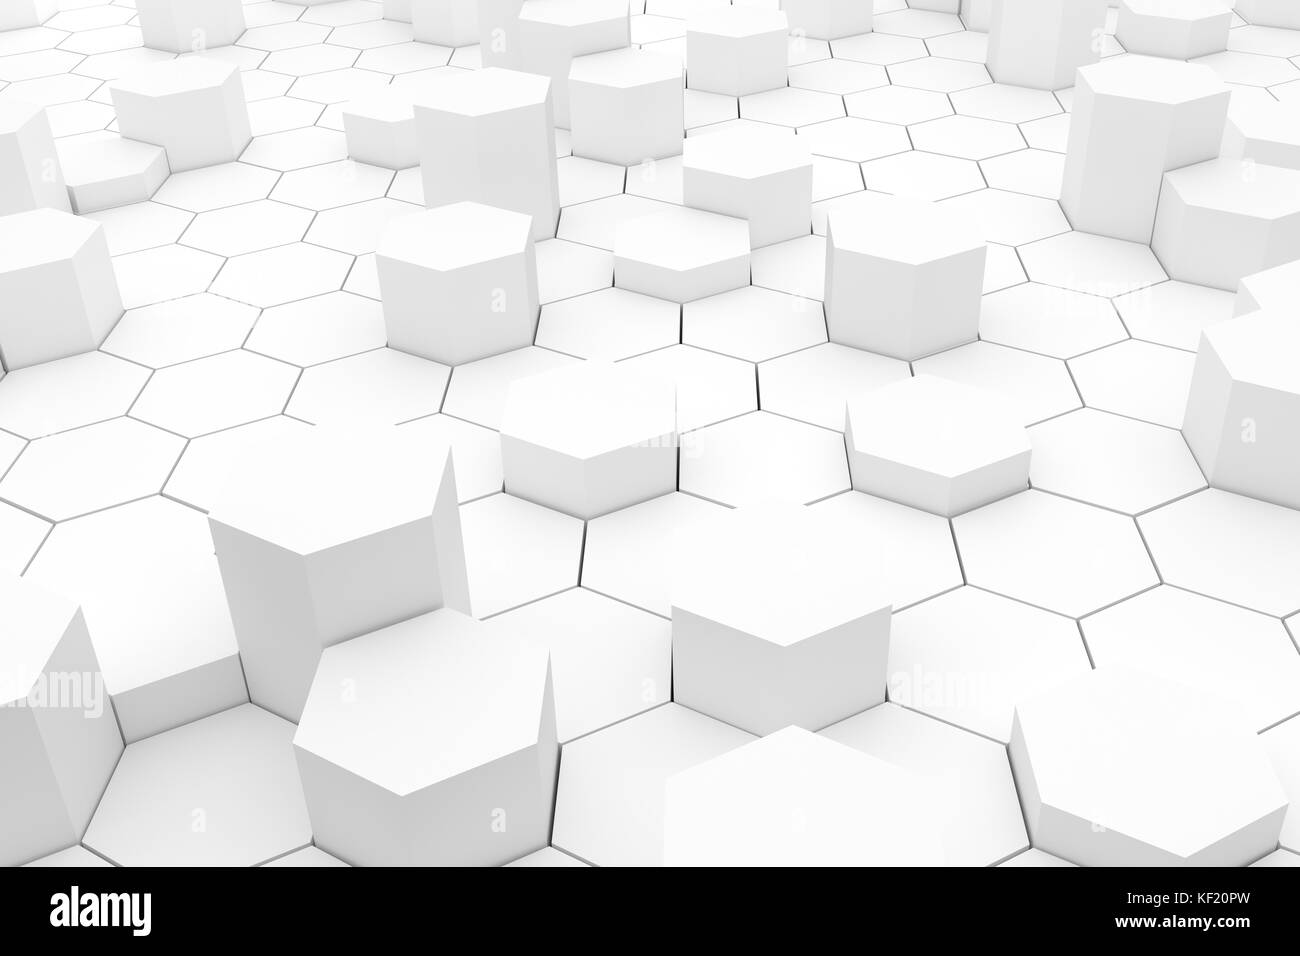 Light abstract background hexagons in geometric style in 3D rendering - Stock Image